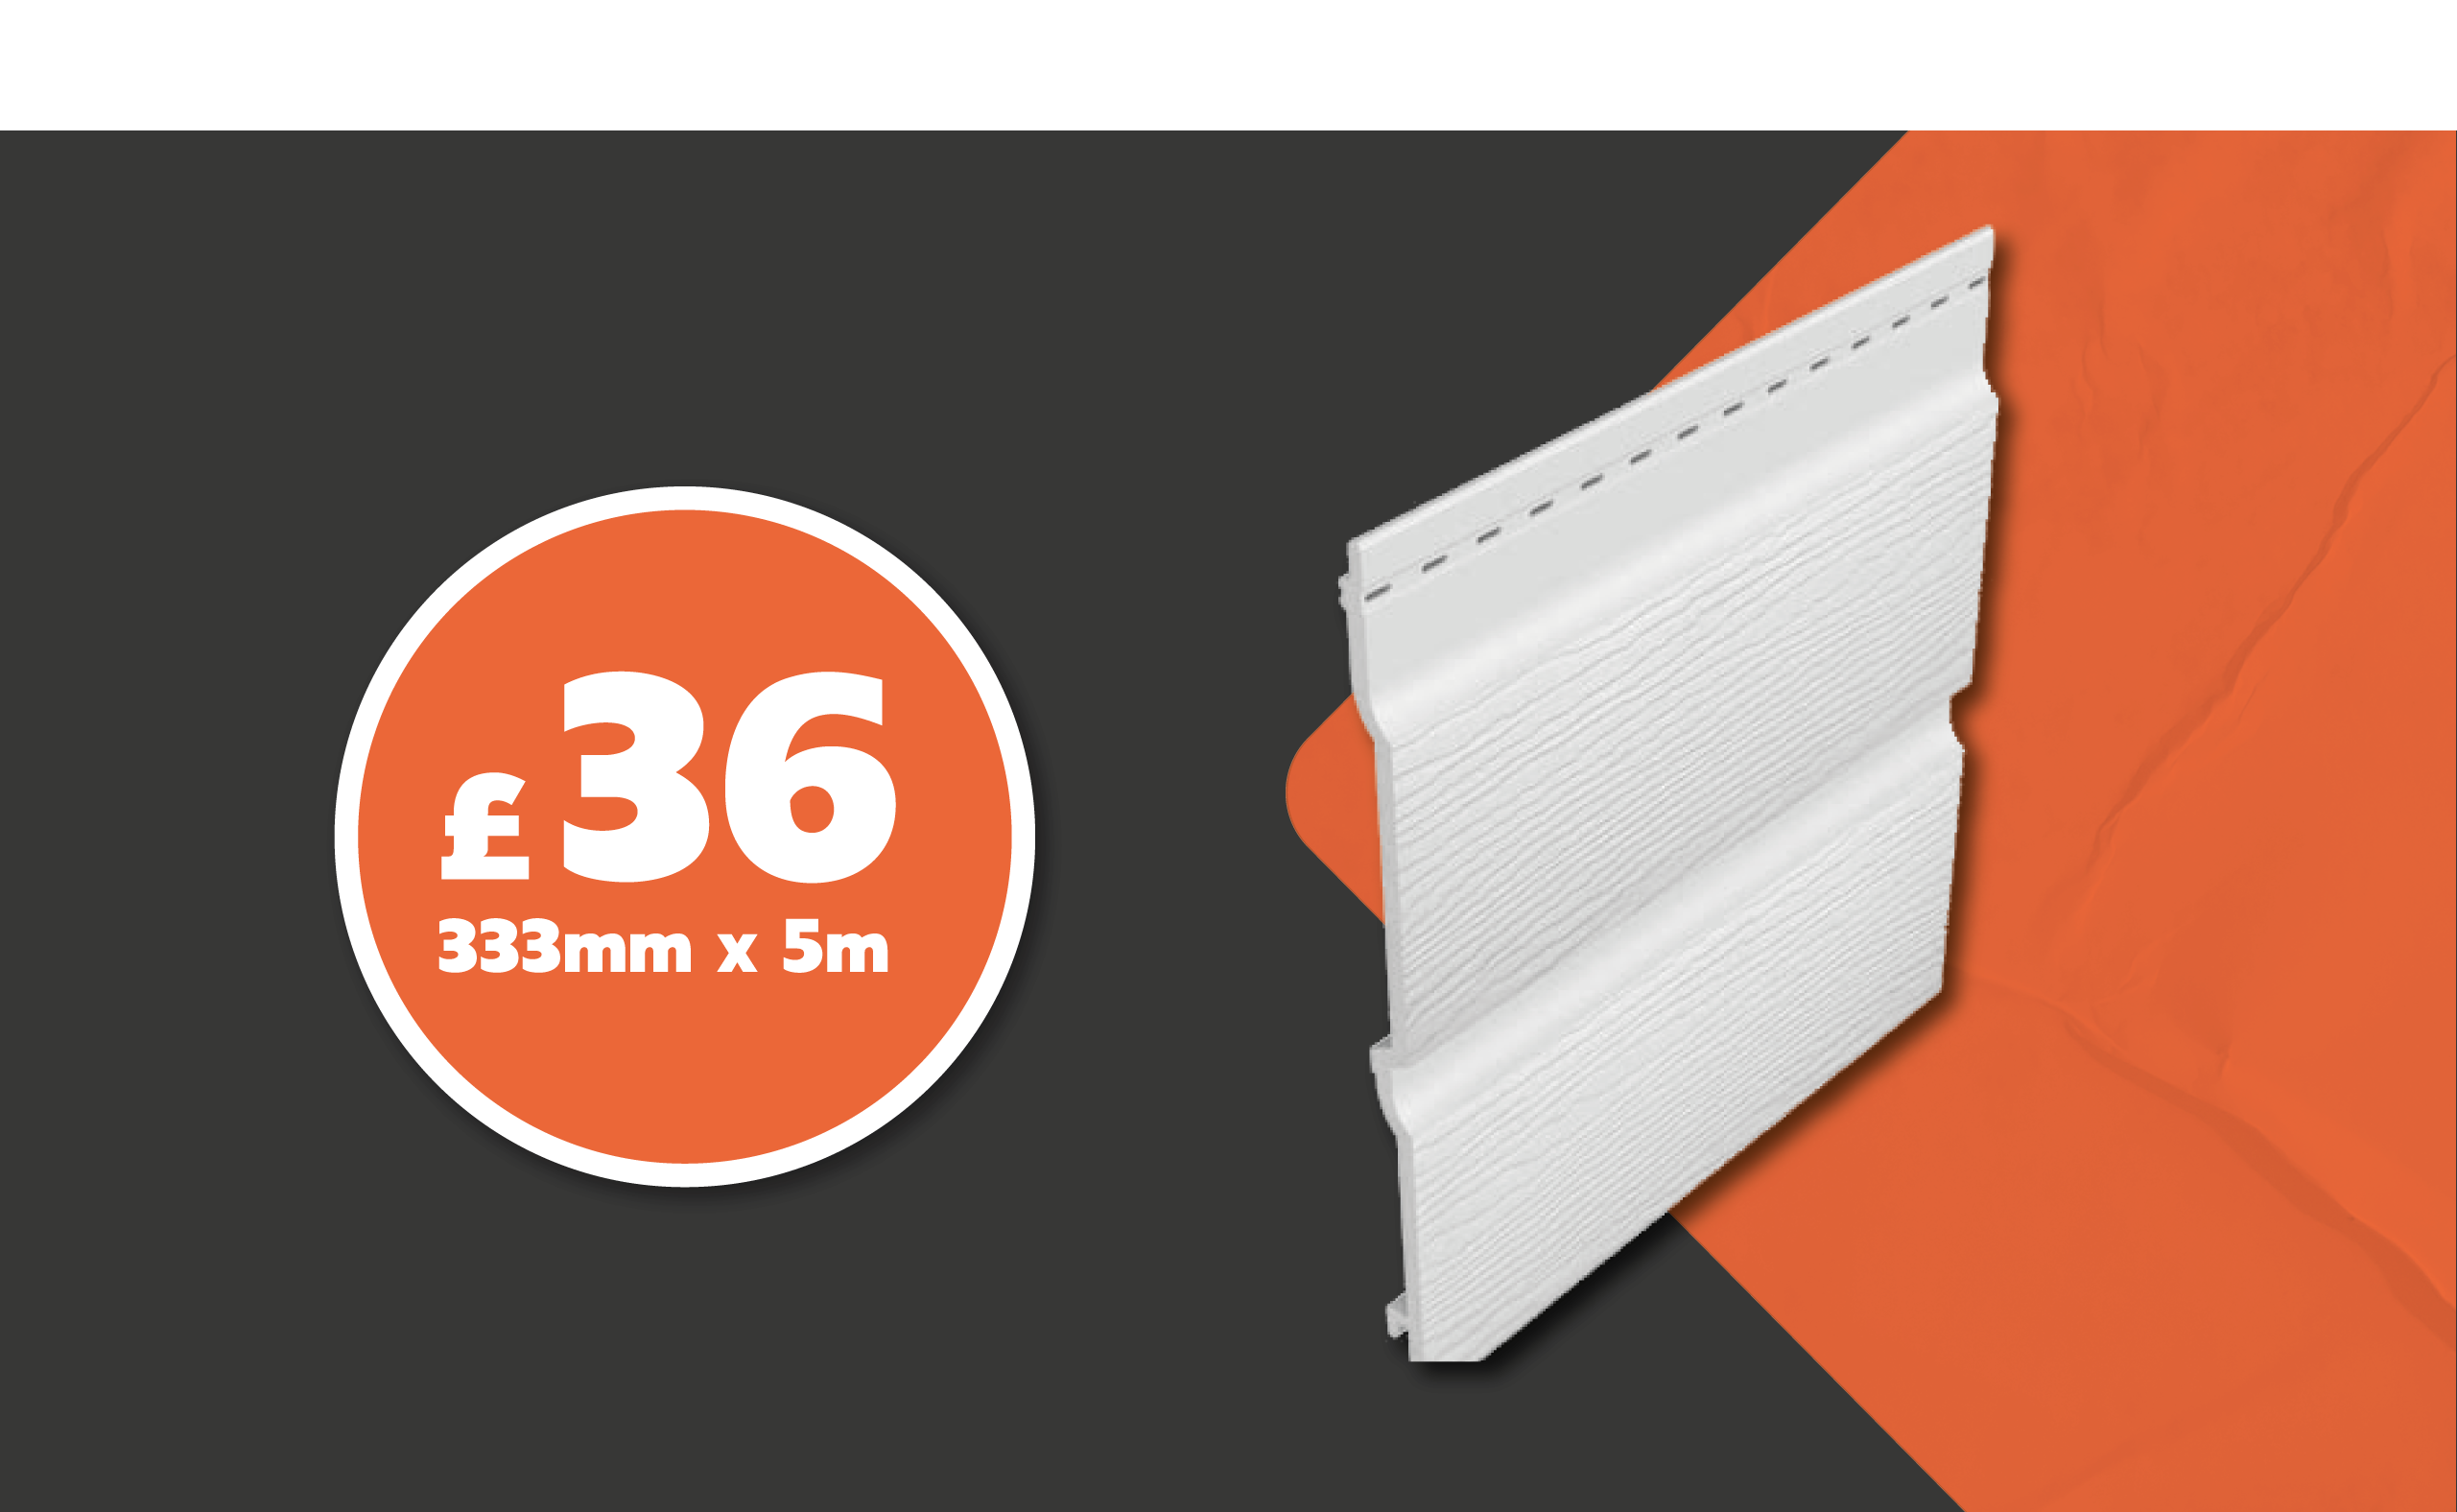 FREEFOAM CLADDING JUST £36 PER LENGTH